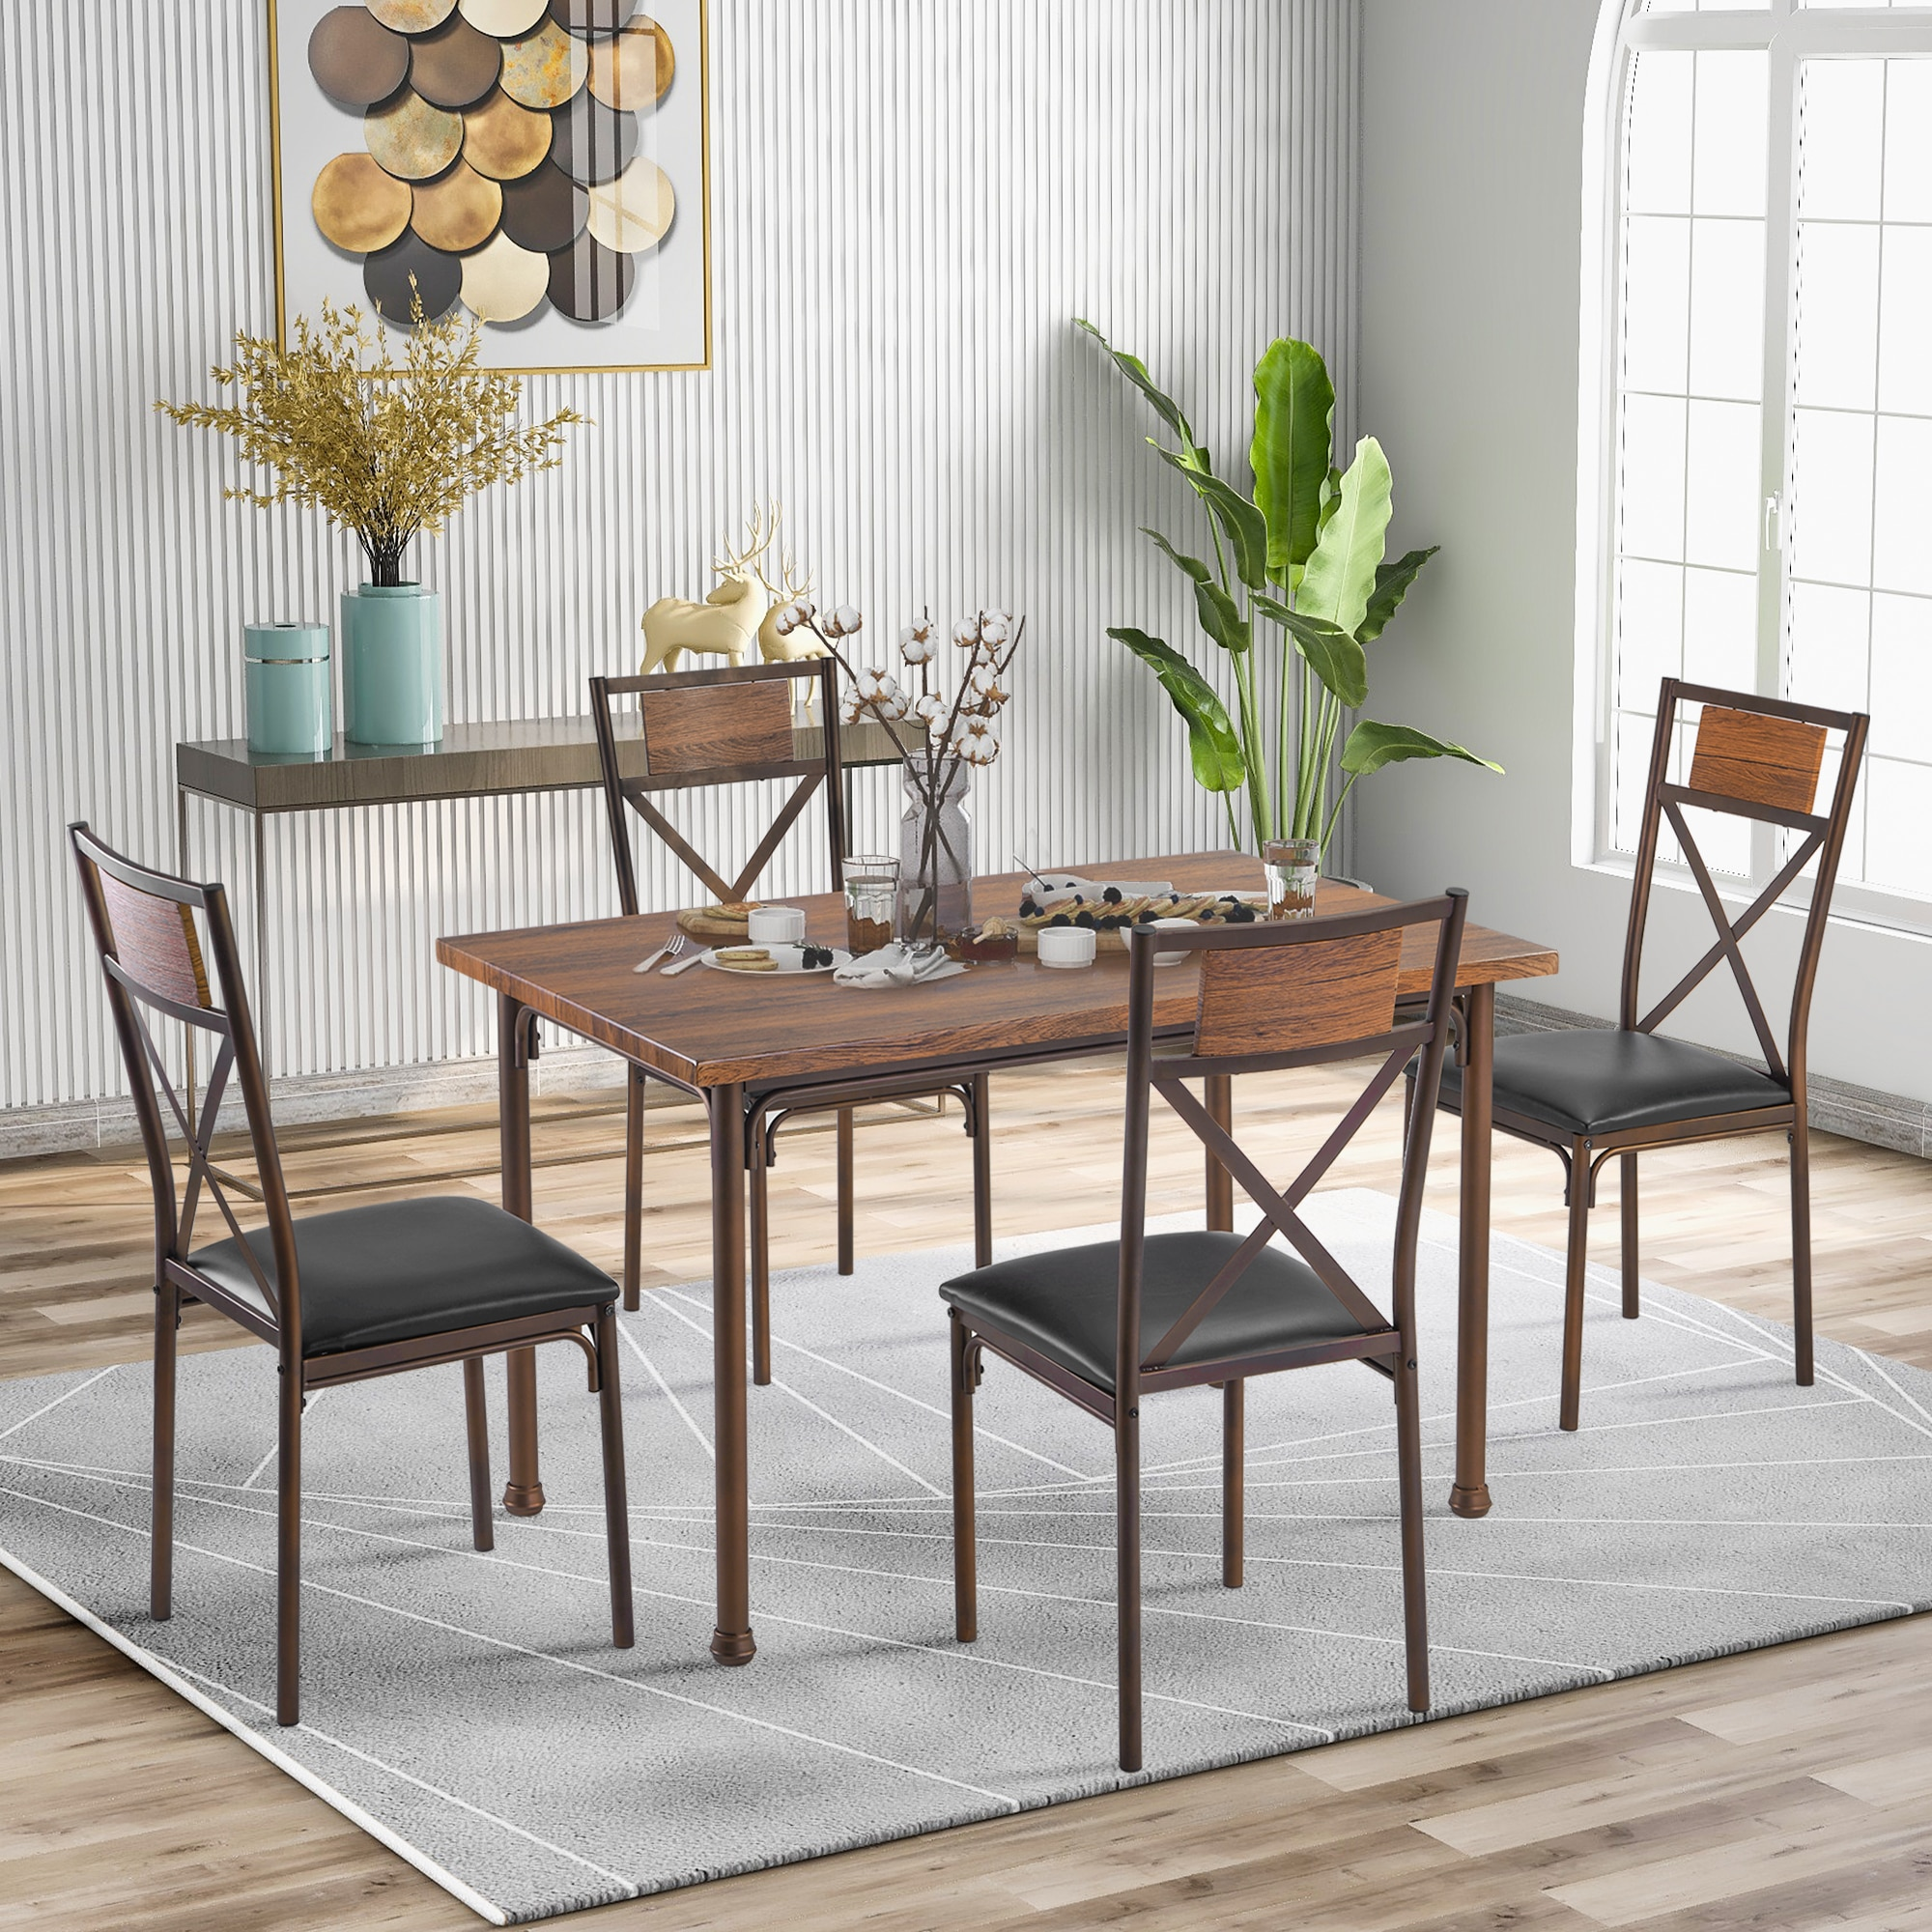 Dining Table Set Living Room Furniture 4 Pieces Chair Restaurant Furniture Modern Home Accessories Fast Shipping 5pcs dining chair set 4 chairs 1 dining table set wooden metal furniture brown black beige home kitchen office furniture